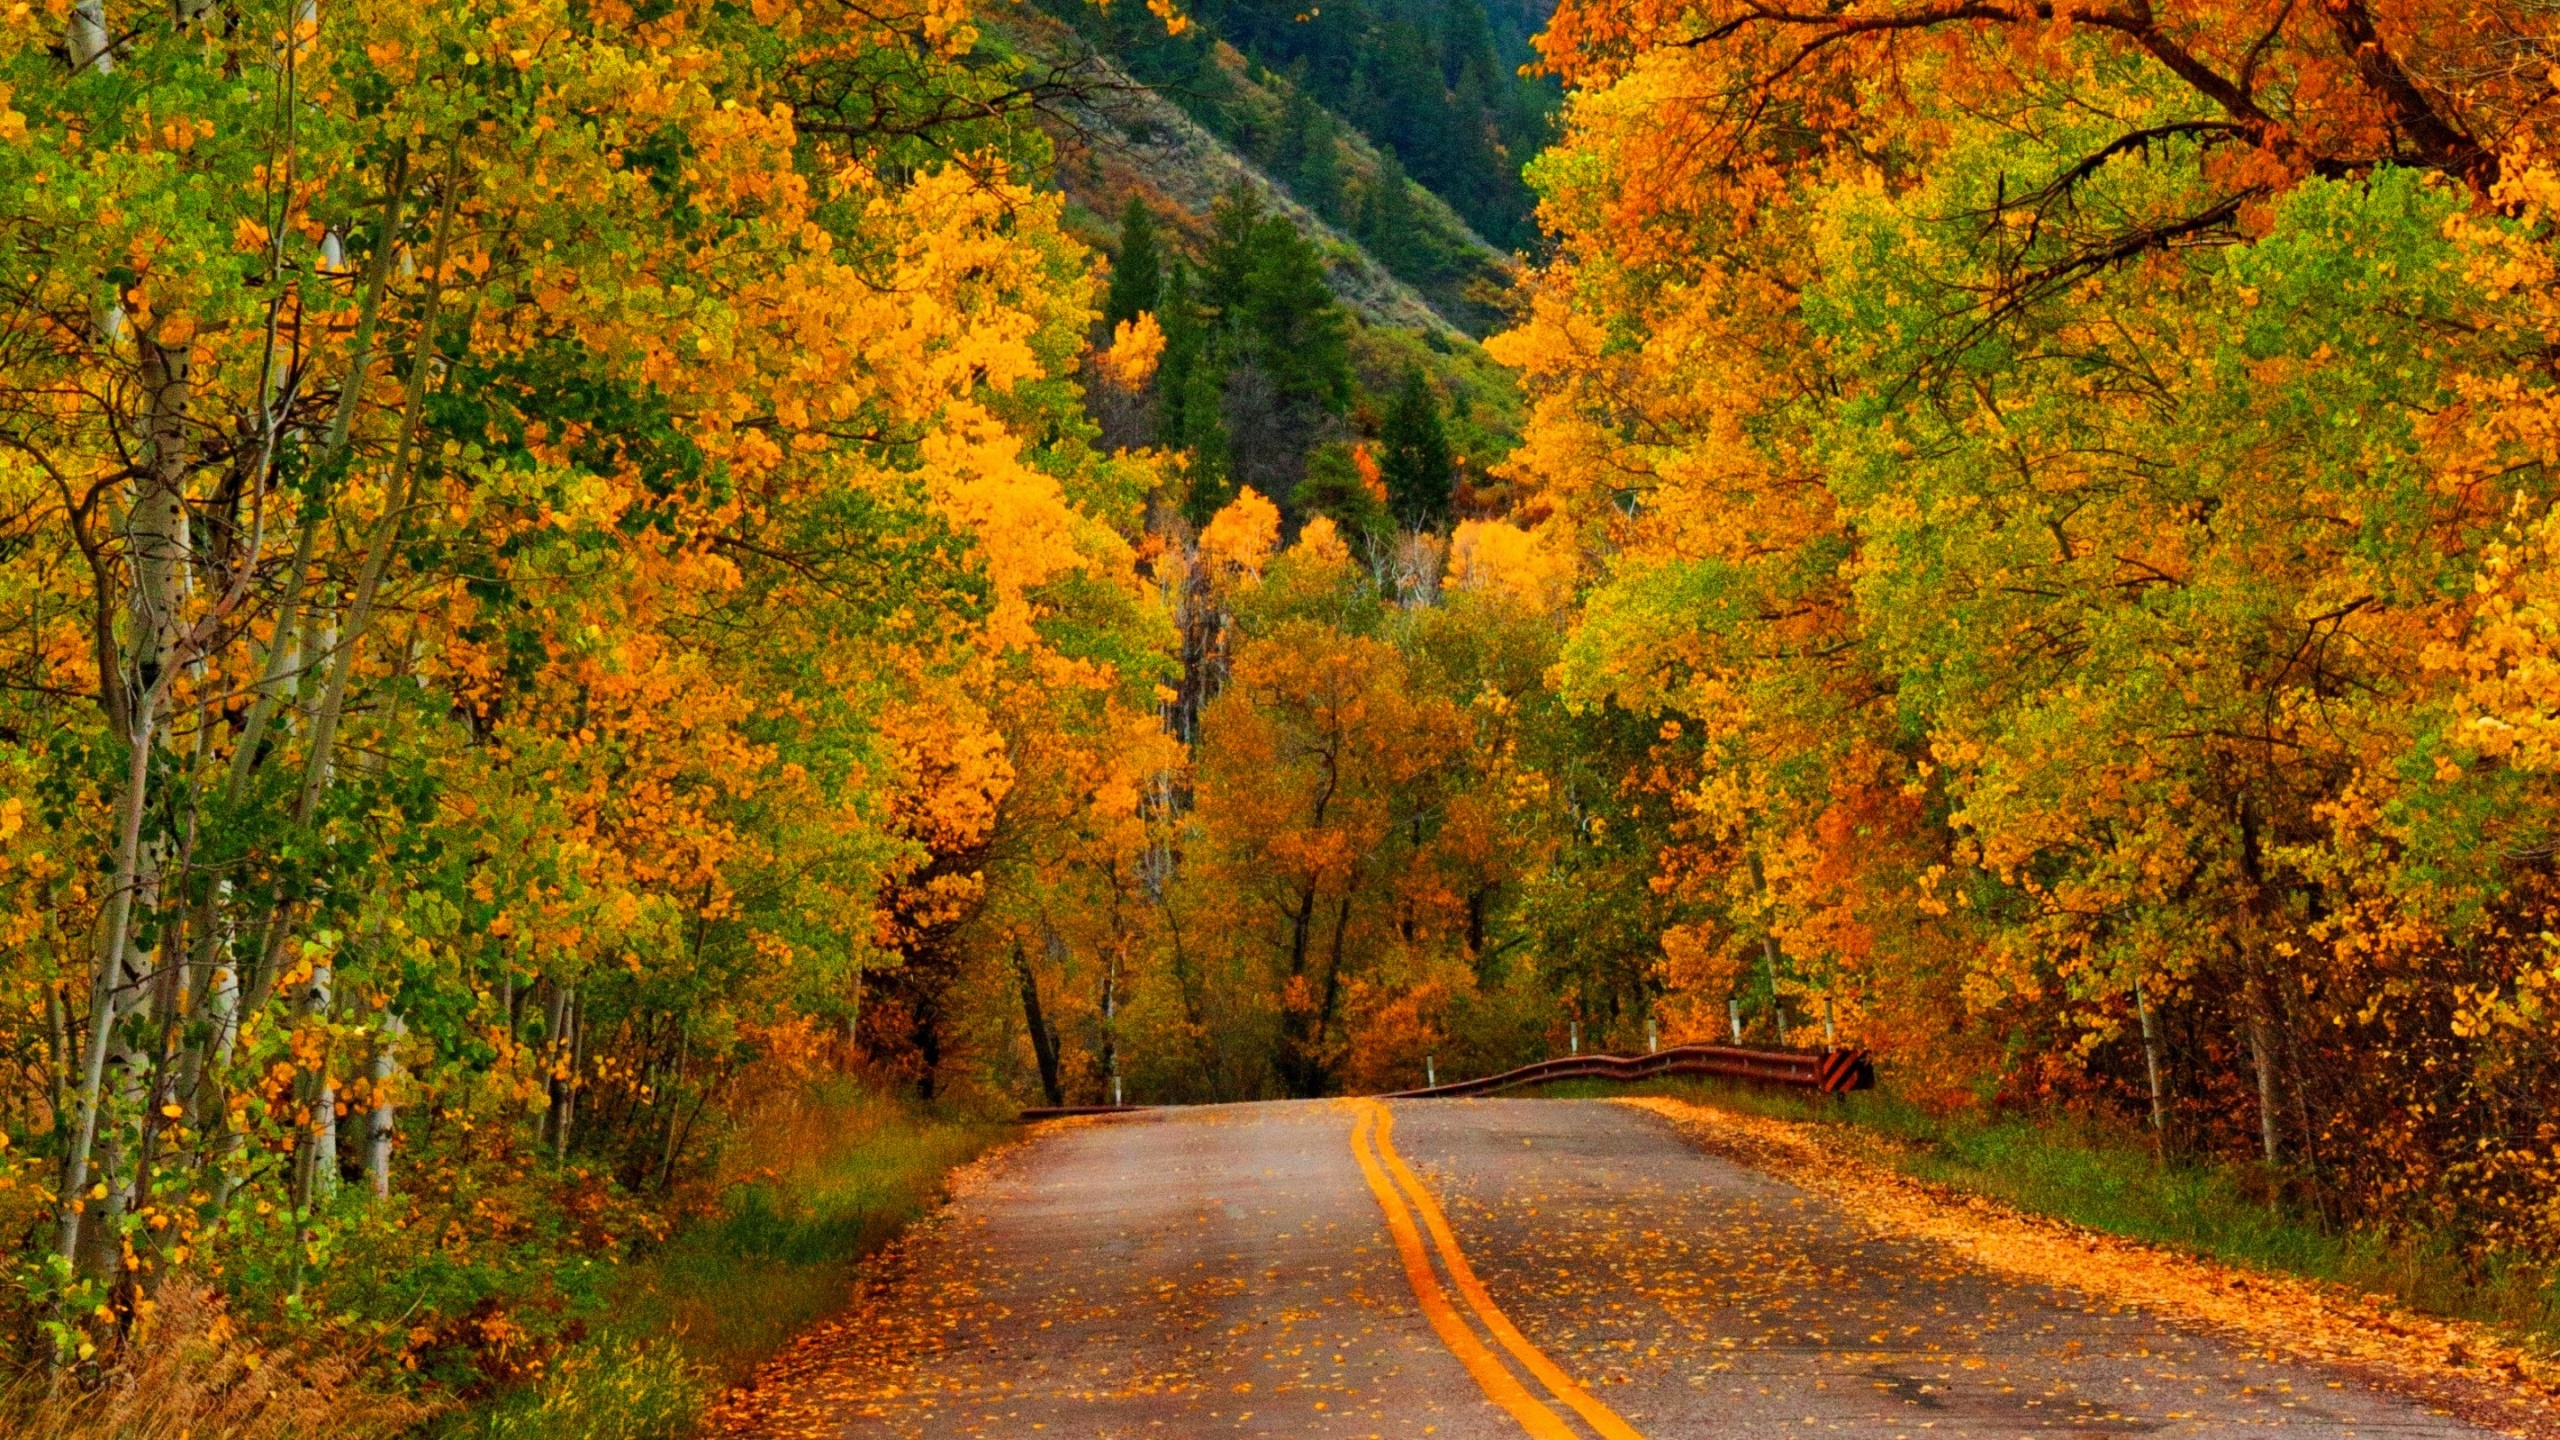 Fall Forest Wallpaper Nature Autumn Forest Park Road Wallpapers 2560x1440